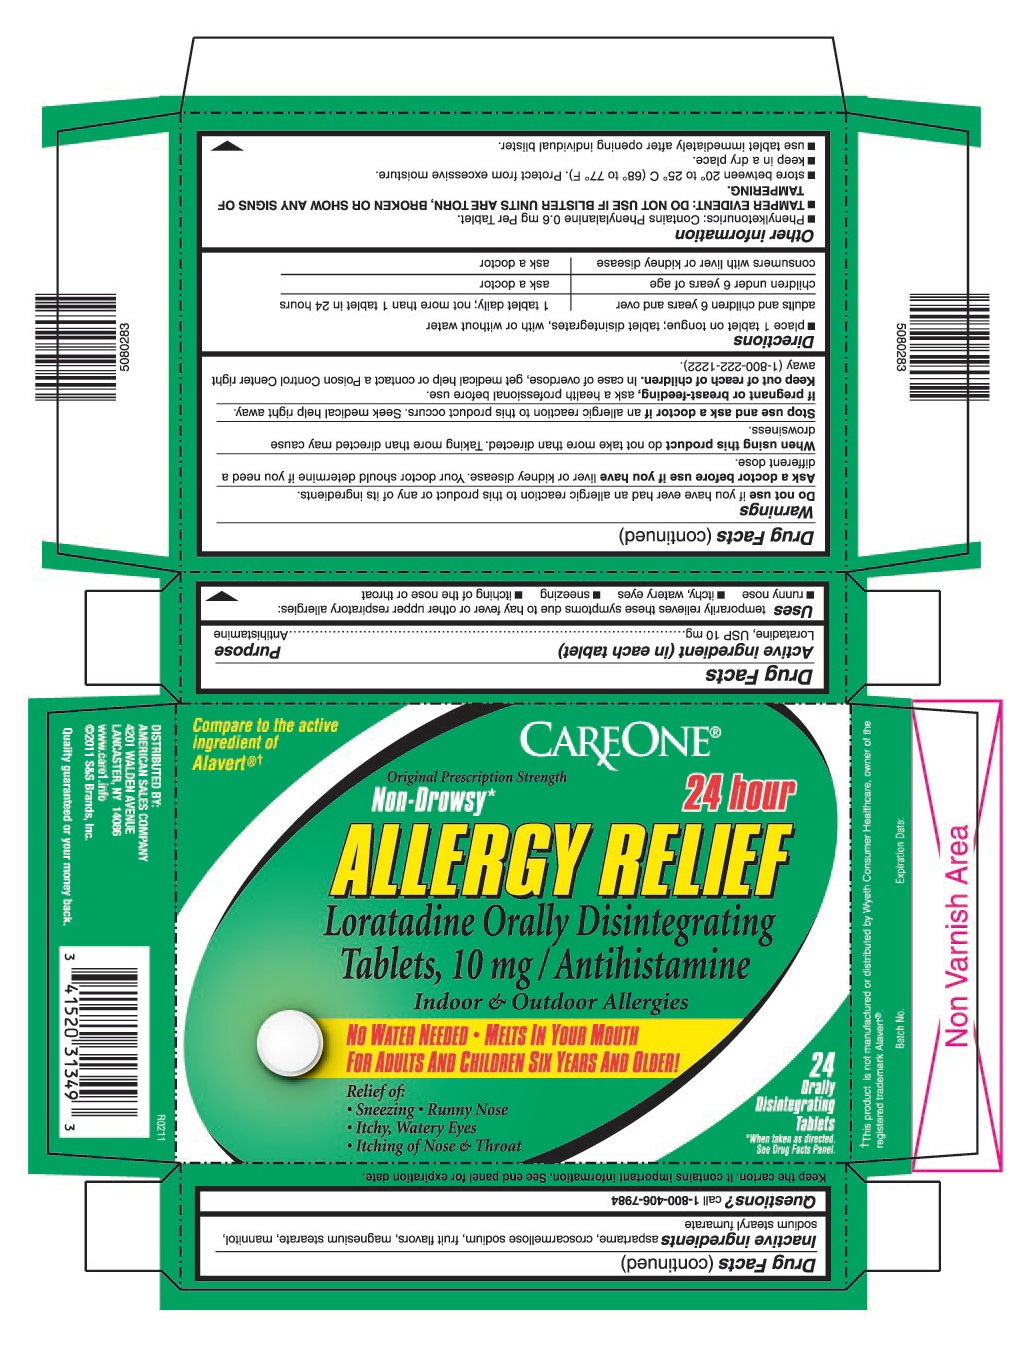 This is the 24 count blister carton label for Careone Loratadine ODT, 10 mg.